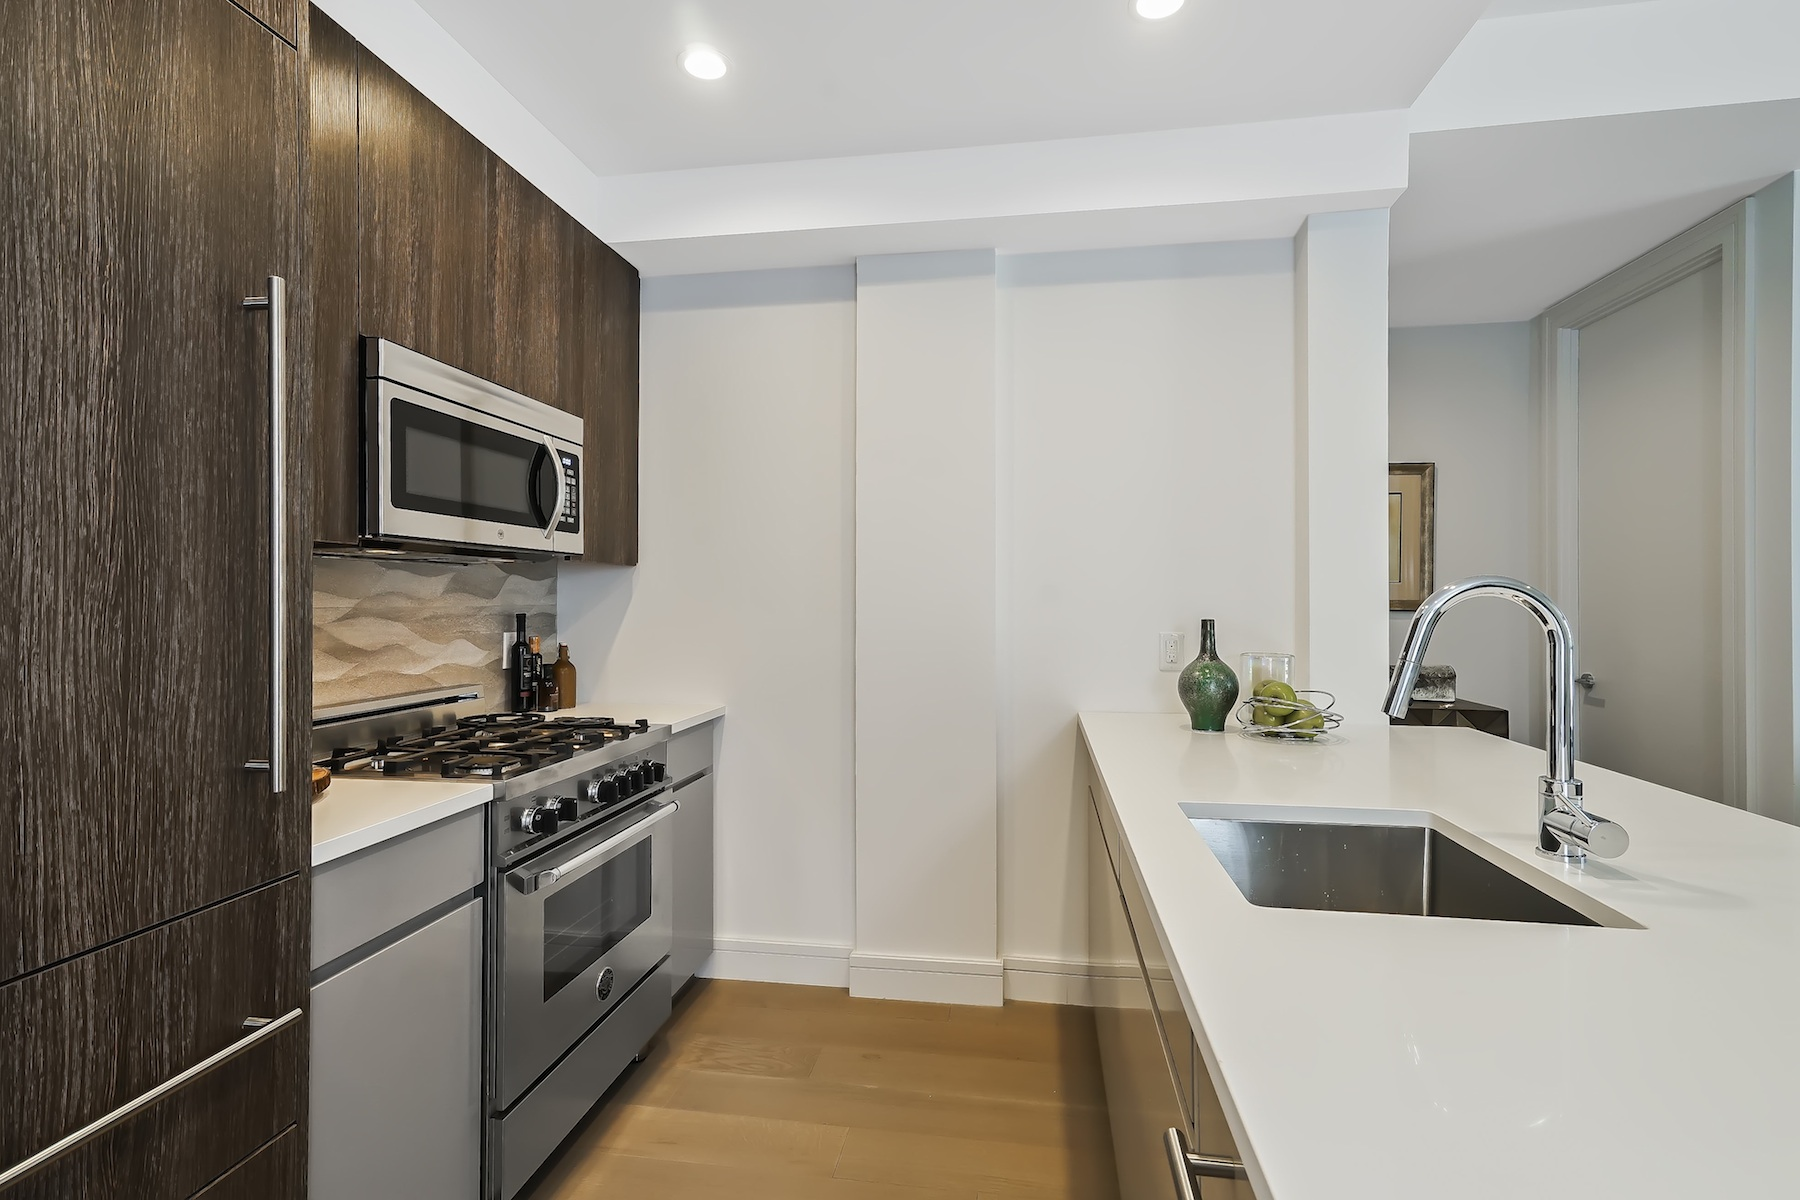 Additional photo for property listing at Stanton on Sixth 695 6th Avenue 3L Brooklyn, New York 11215 United States